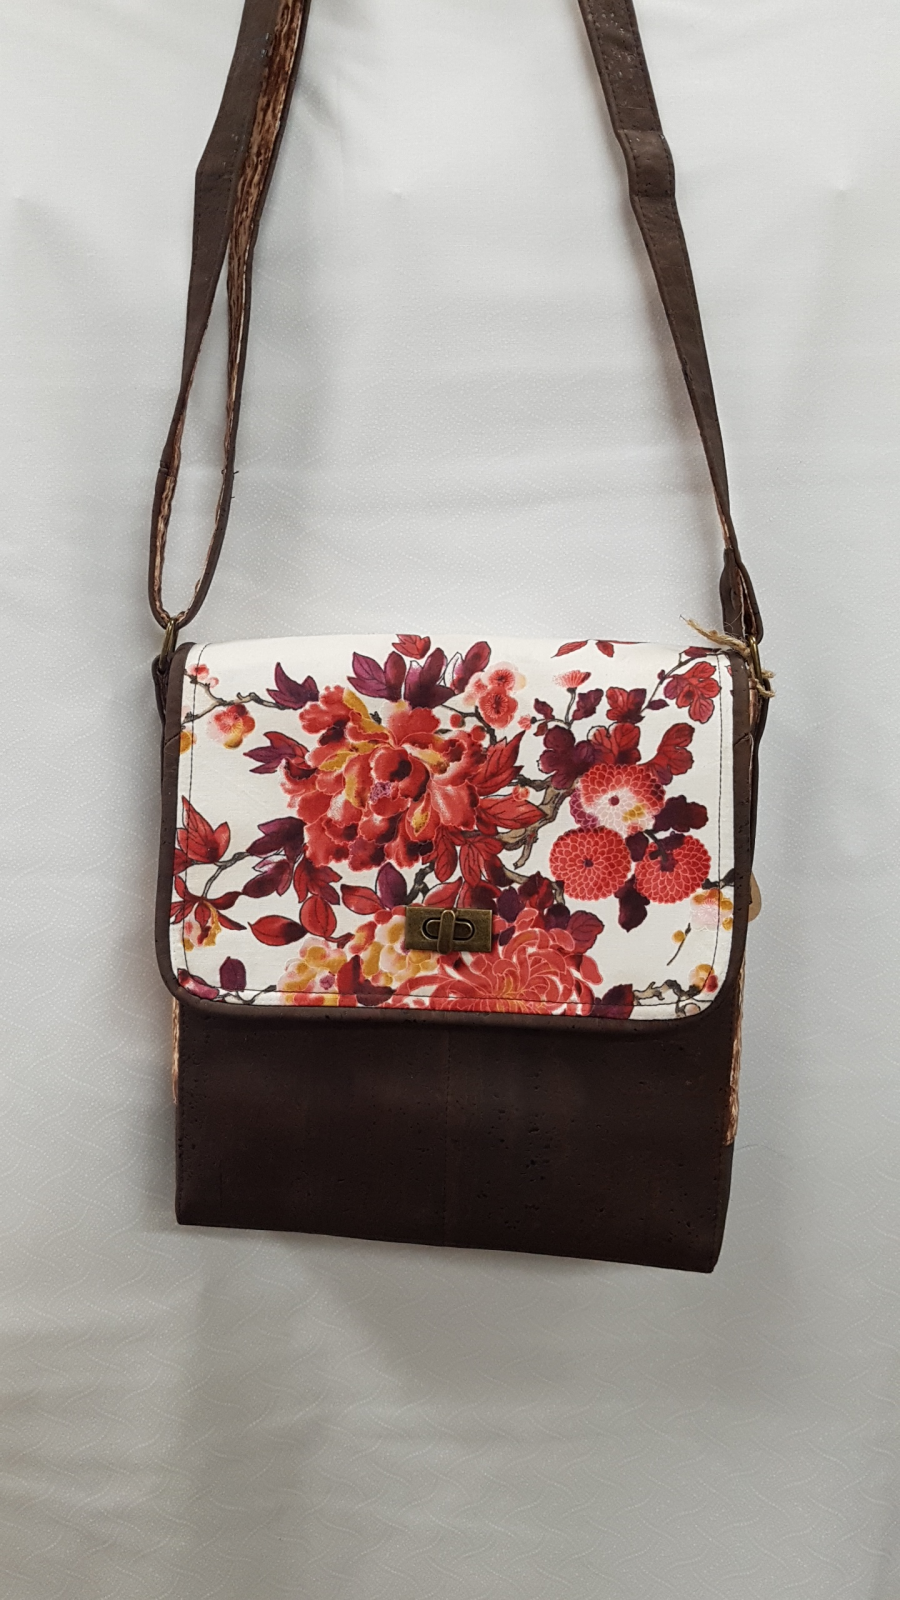 Satchel Brown with Flowers